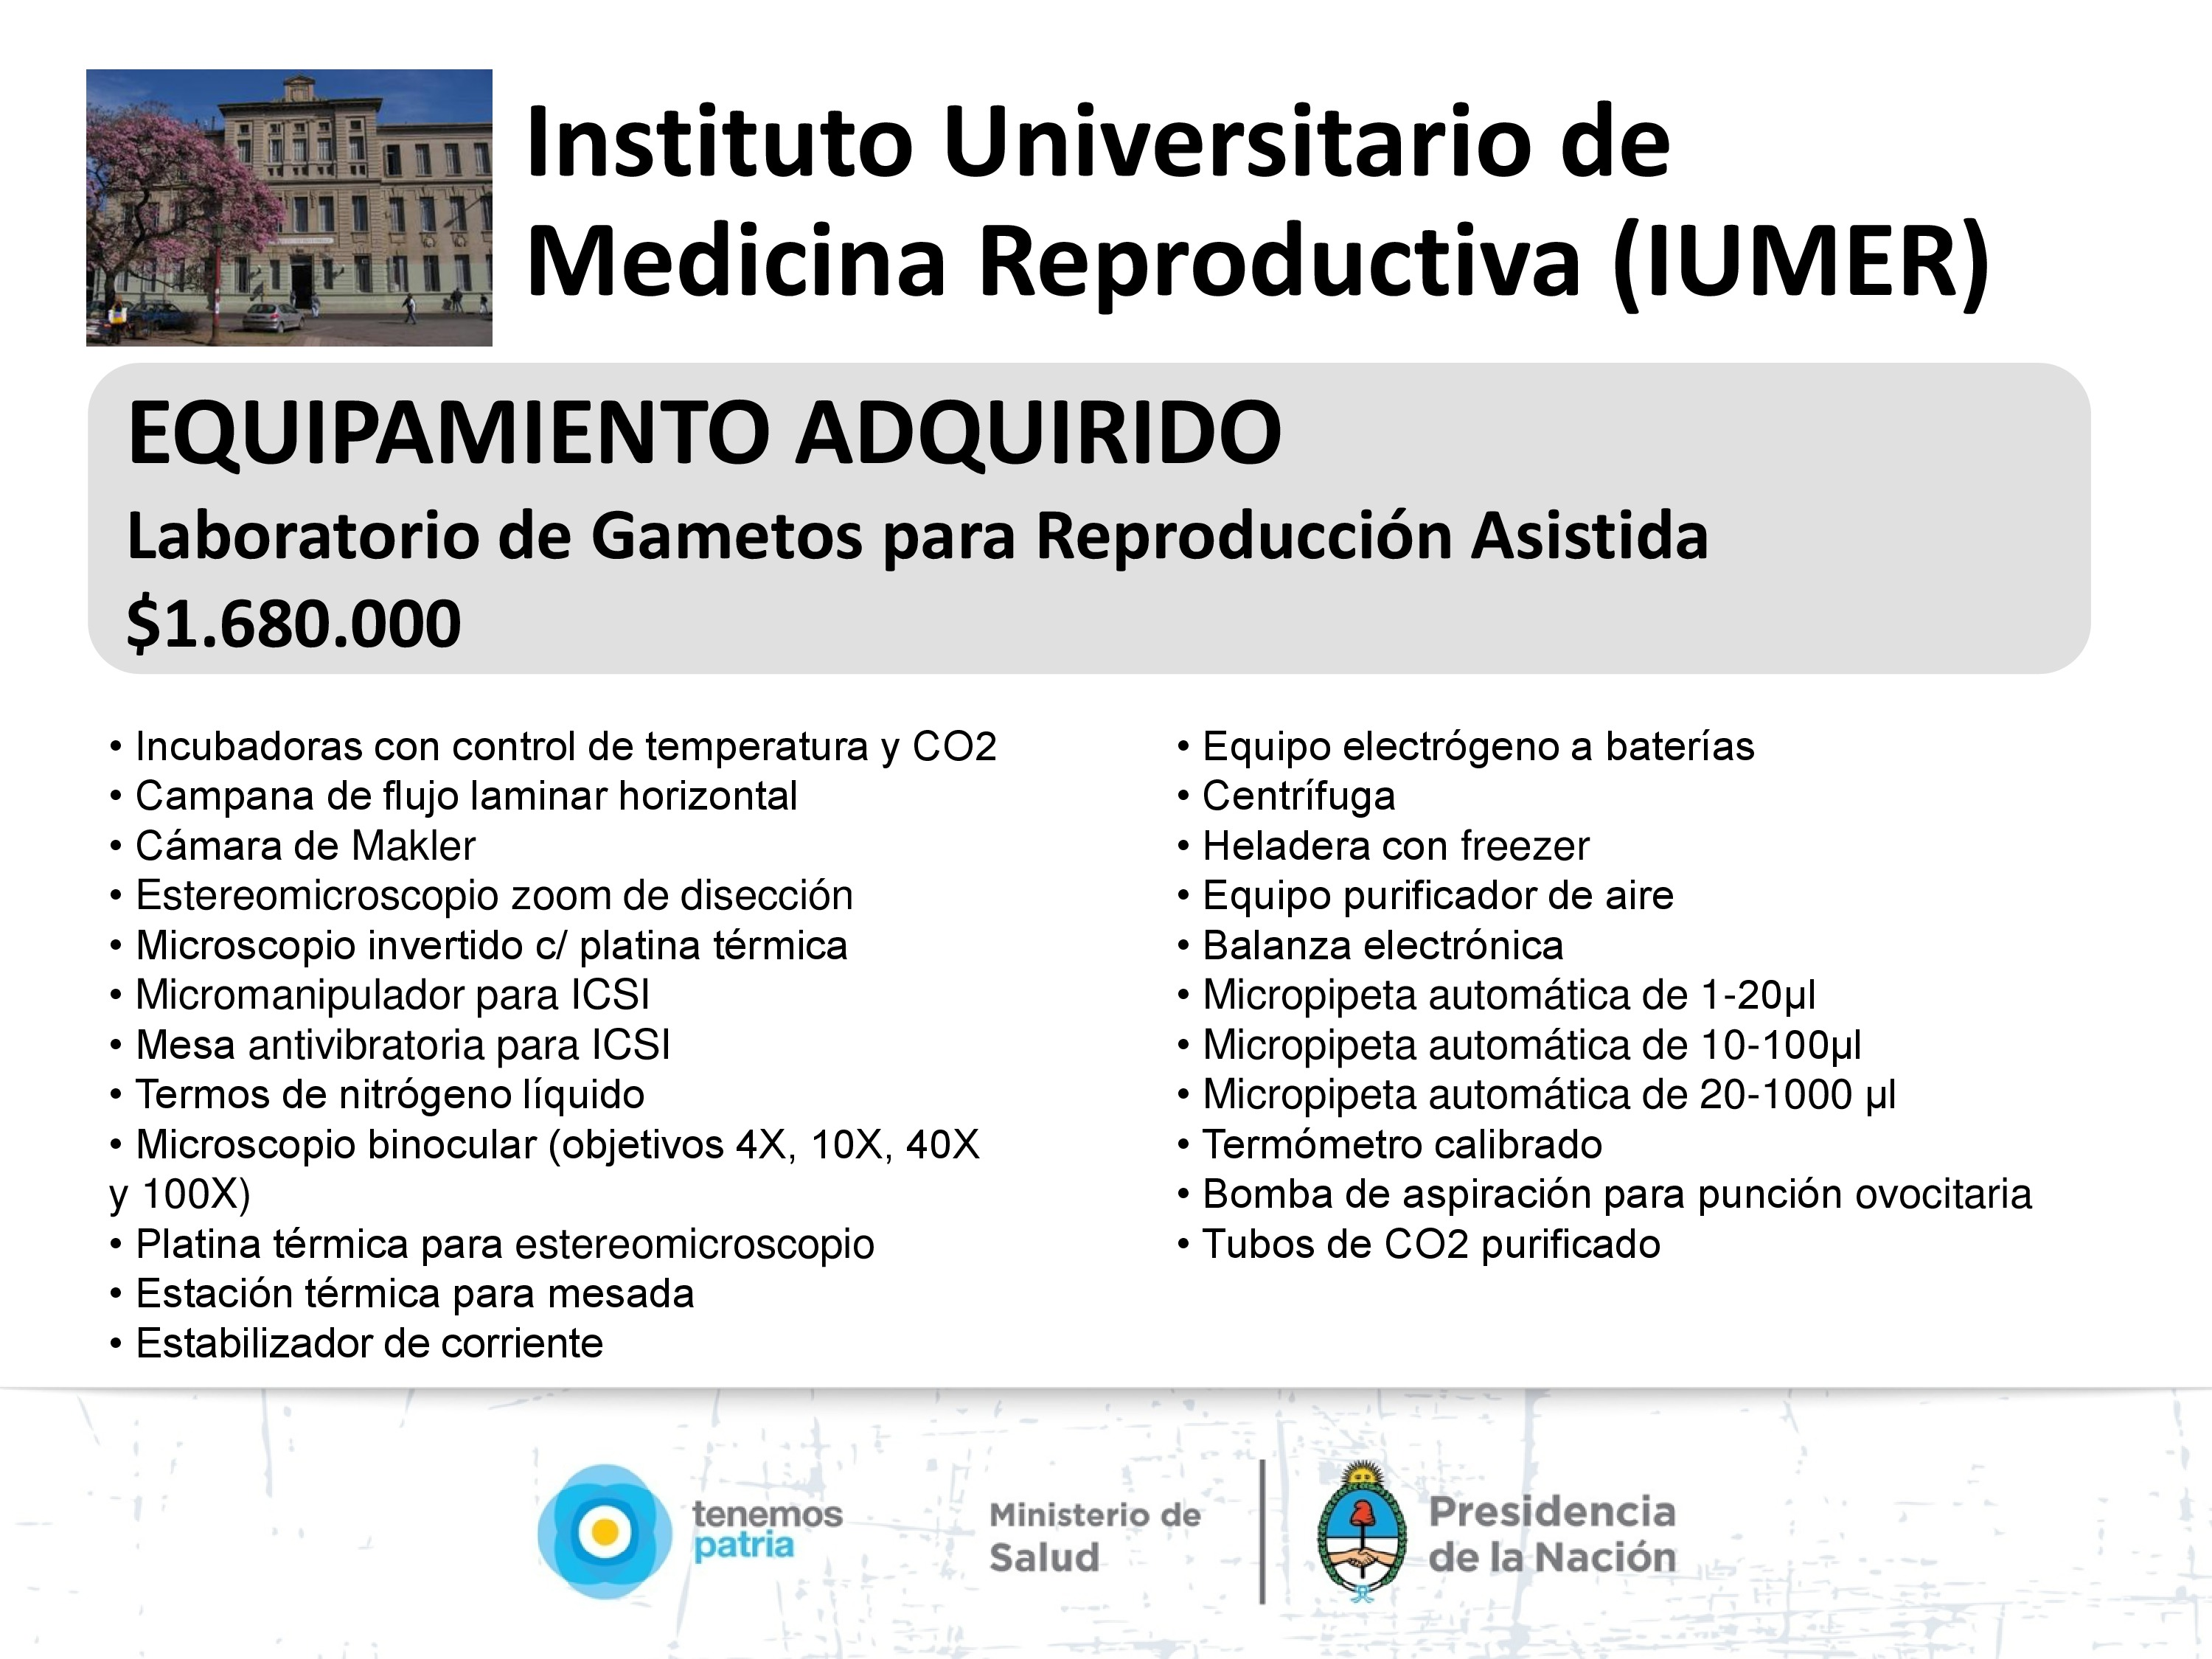 Instituto Universitario de Medicina Reproductiva, Córdoba.